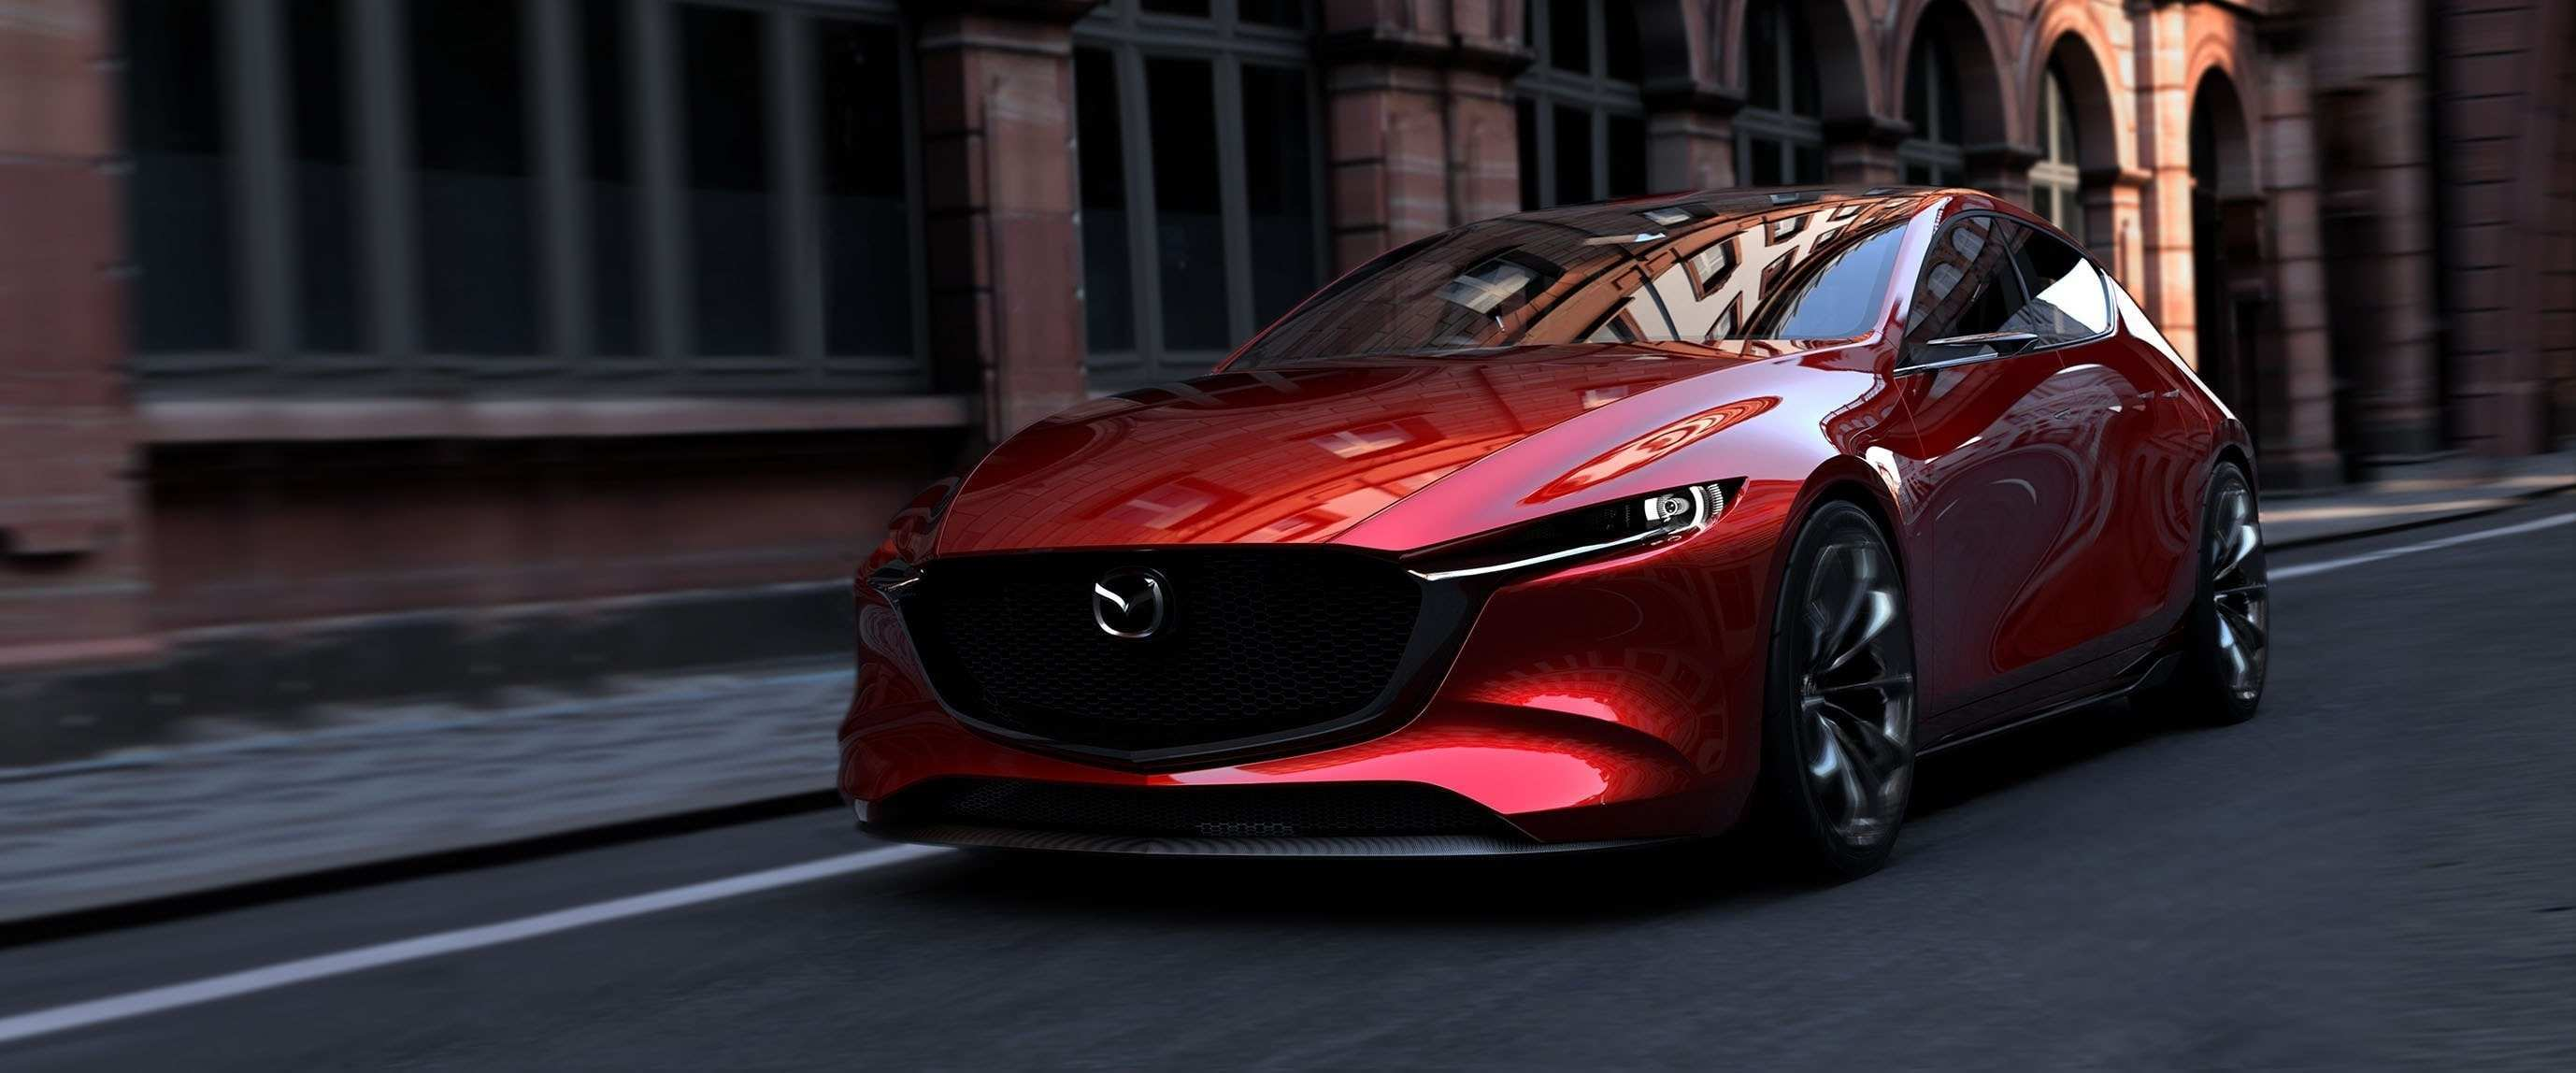 66 New 2019 Mazda 6 Coupe Engine